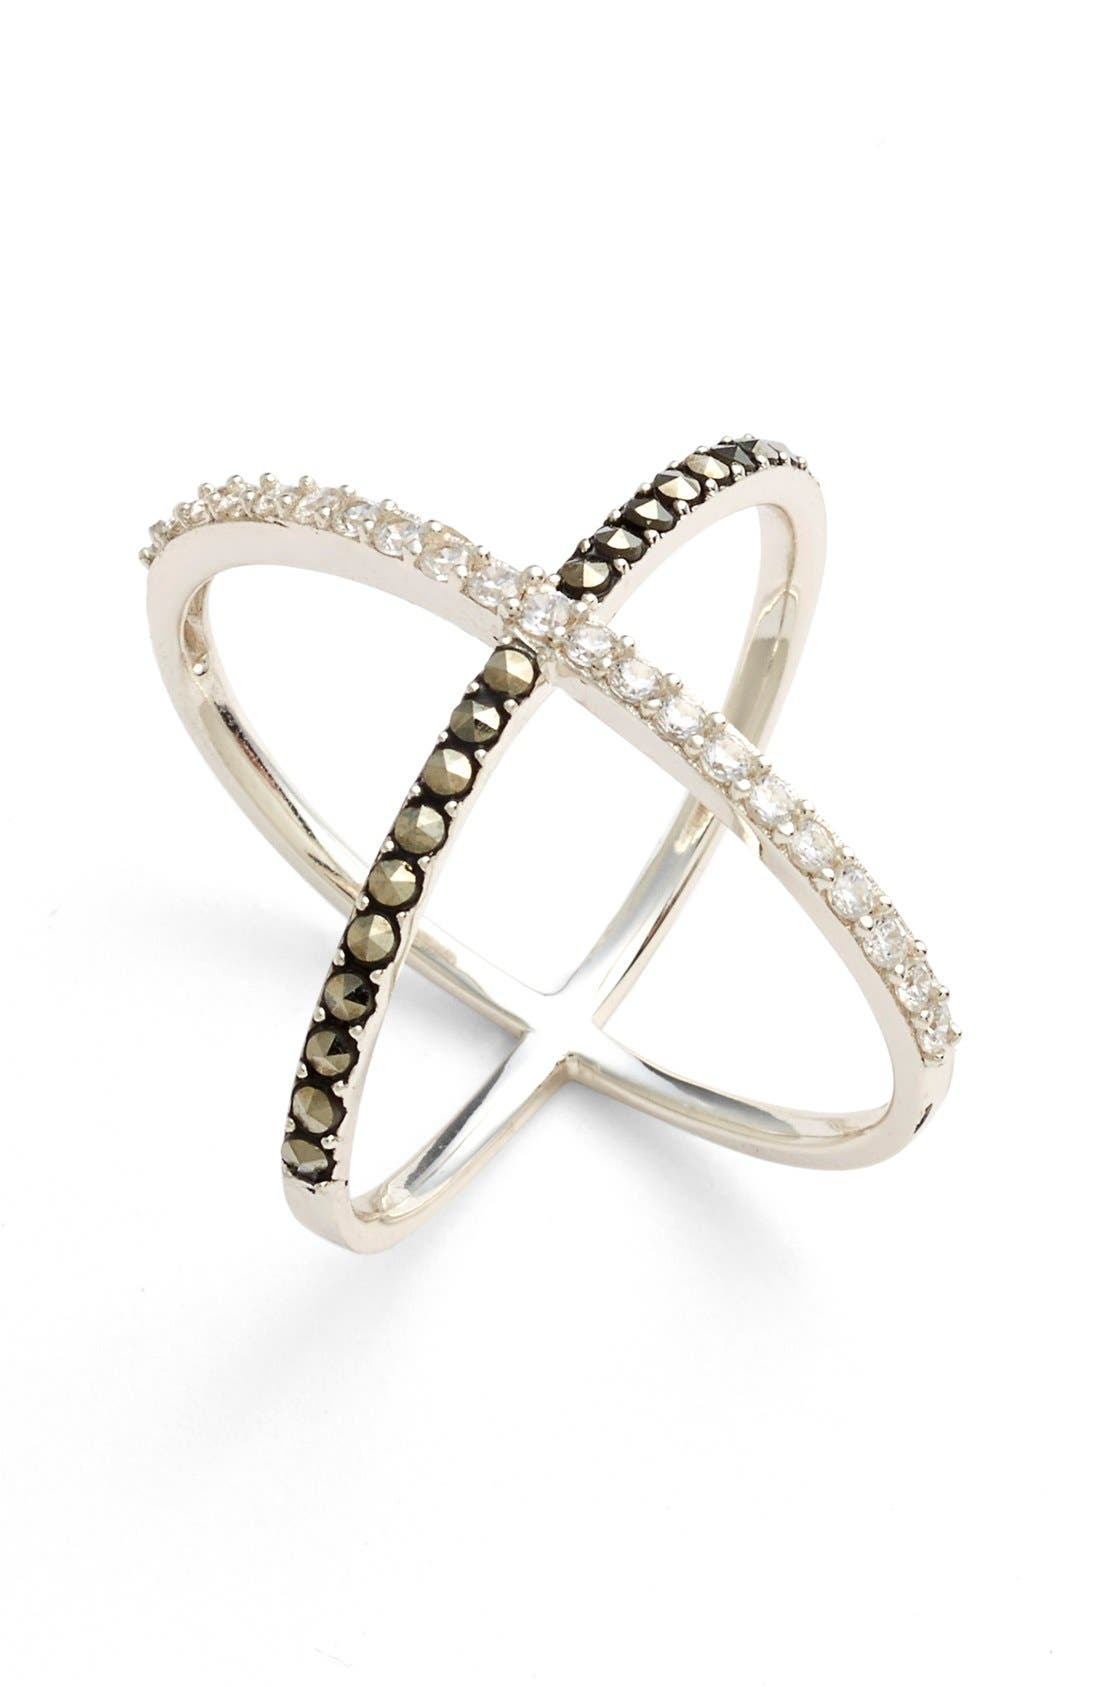 'Rings & Things' Crossover Ring,                         Main,                         color, Silver/ Marcasite/ Crystal